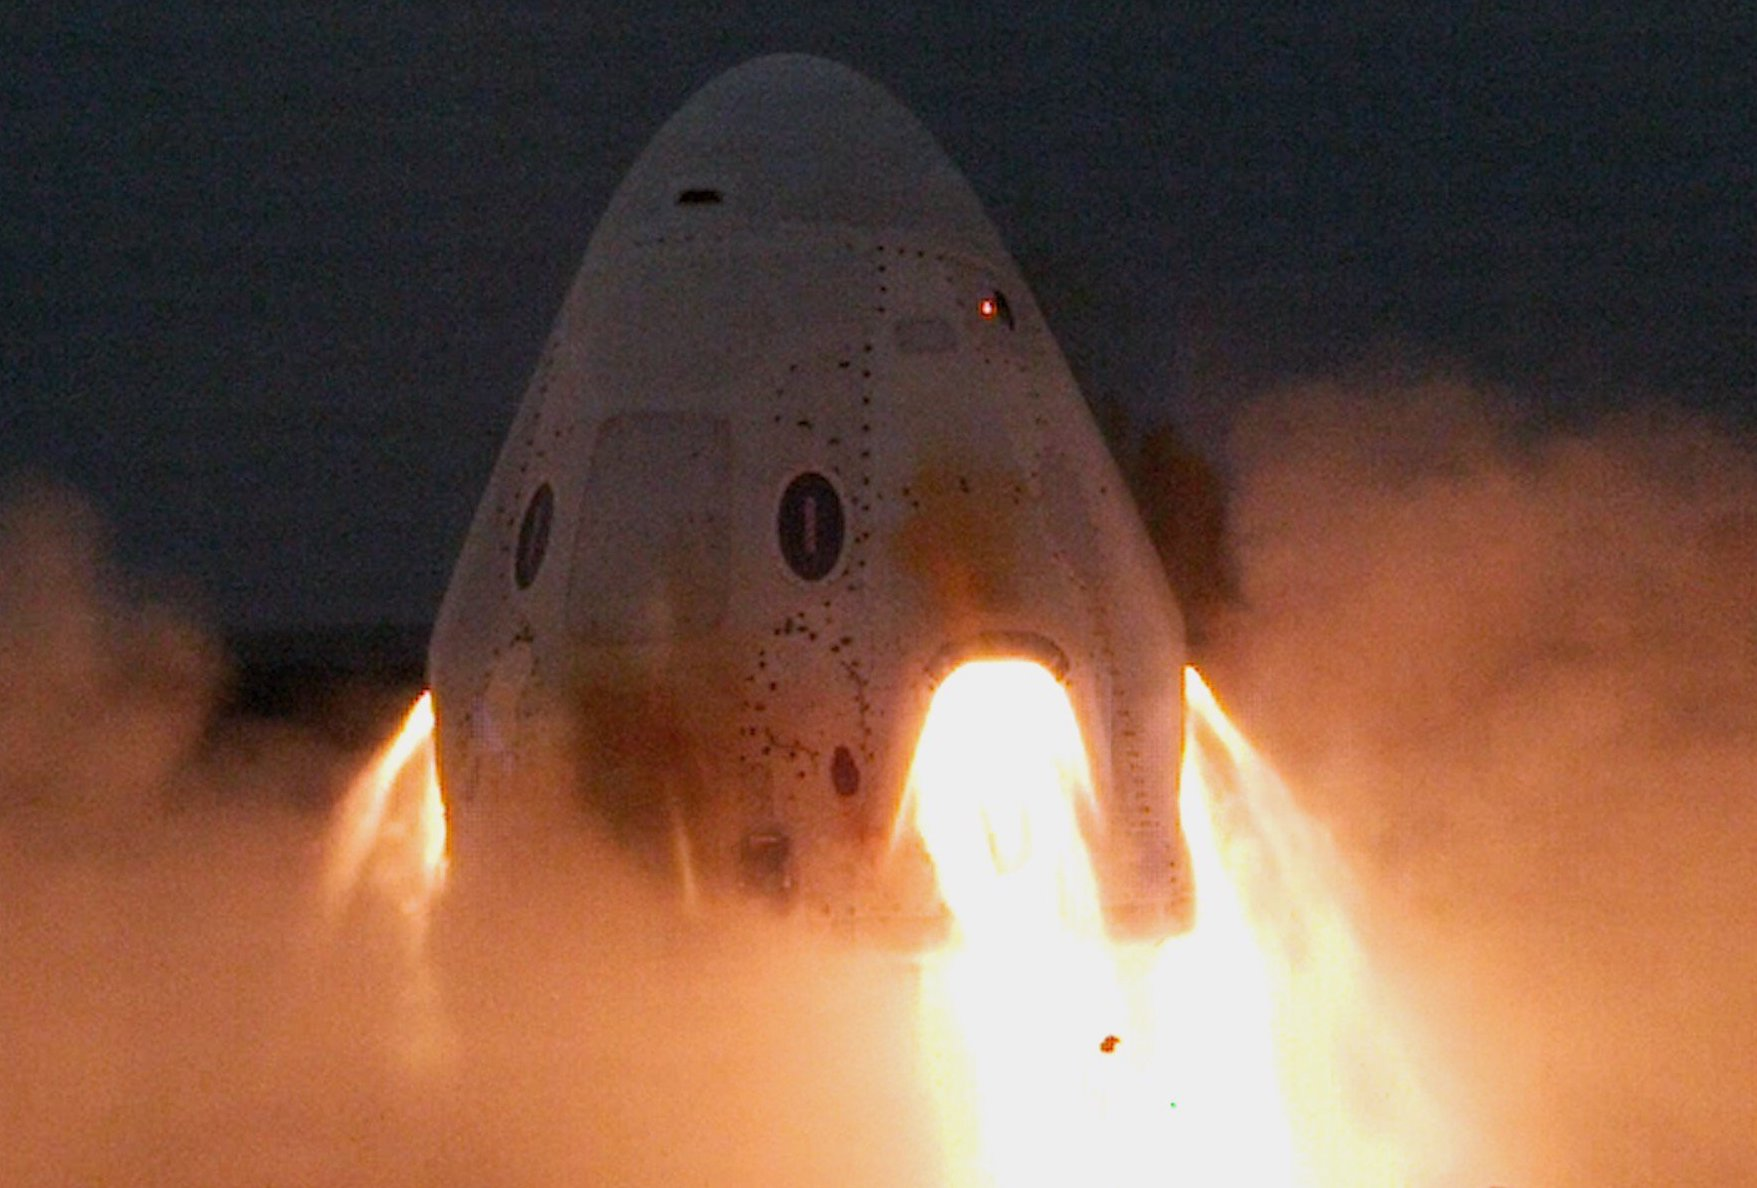 SpaceX safely and successfully completed tests of the Crew Dragon engine